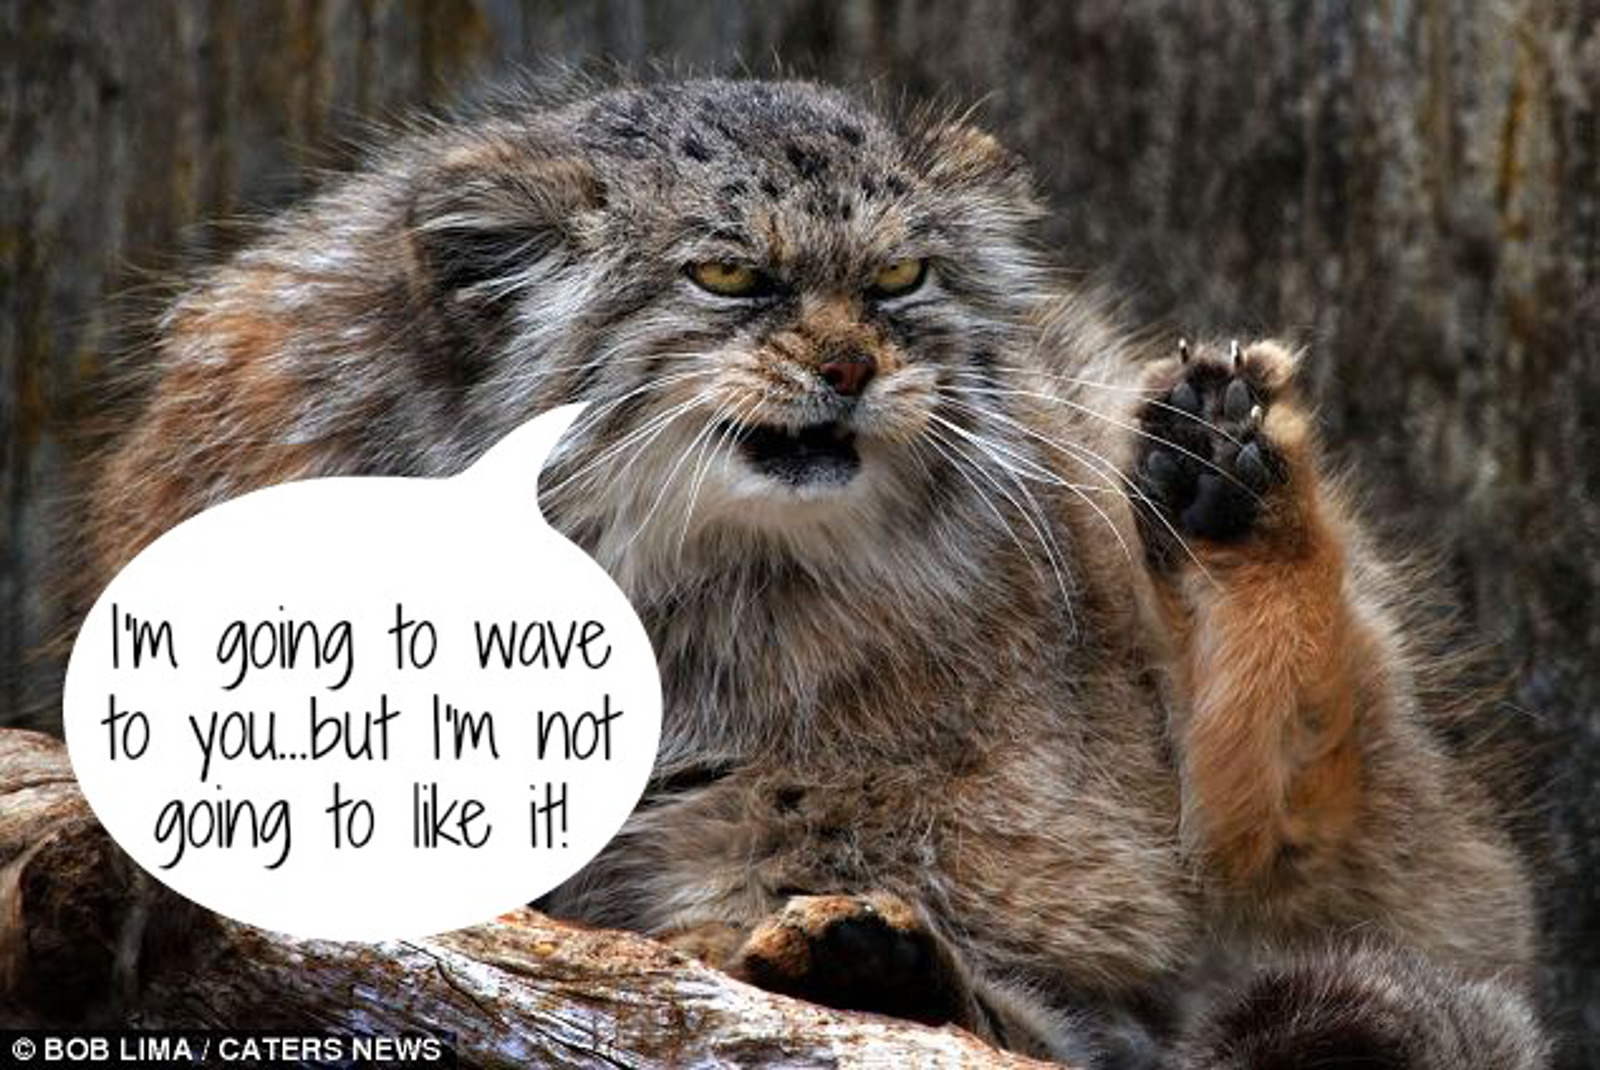 Here's What Zoo Animals Have to Say About Life in a Cage